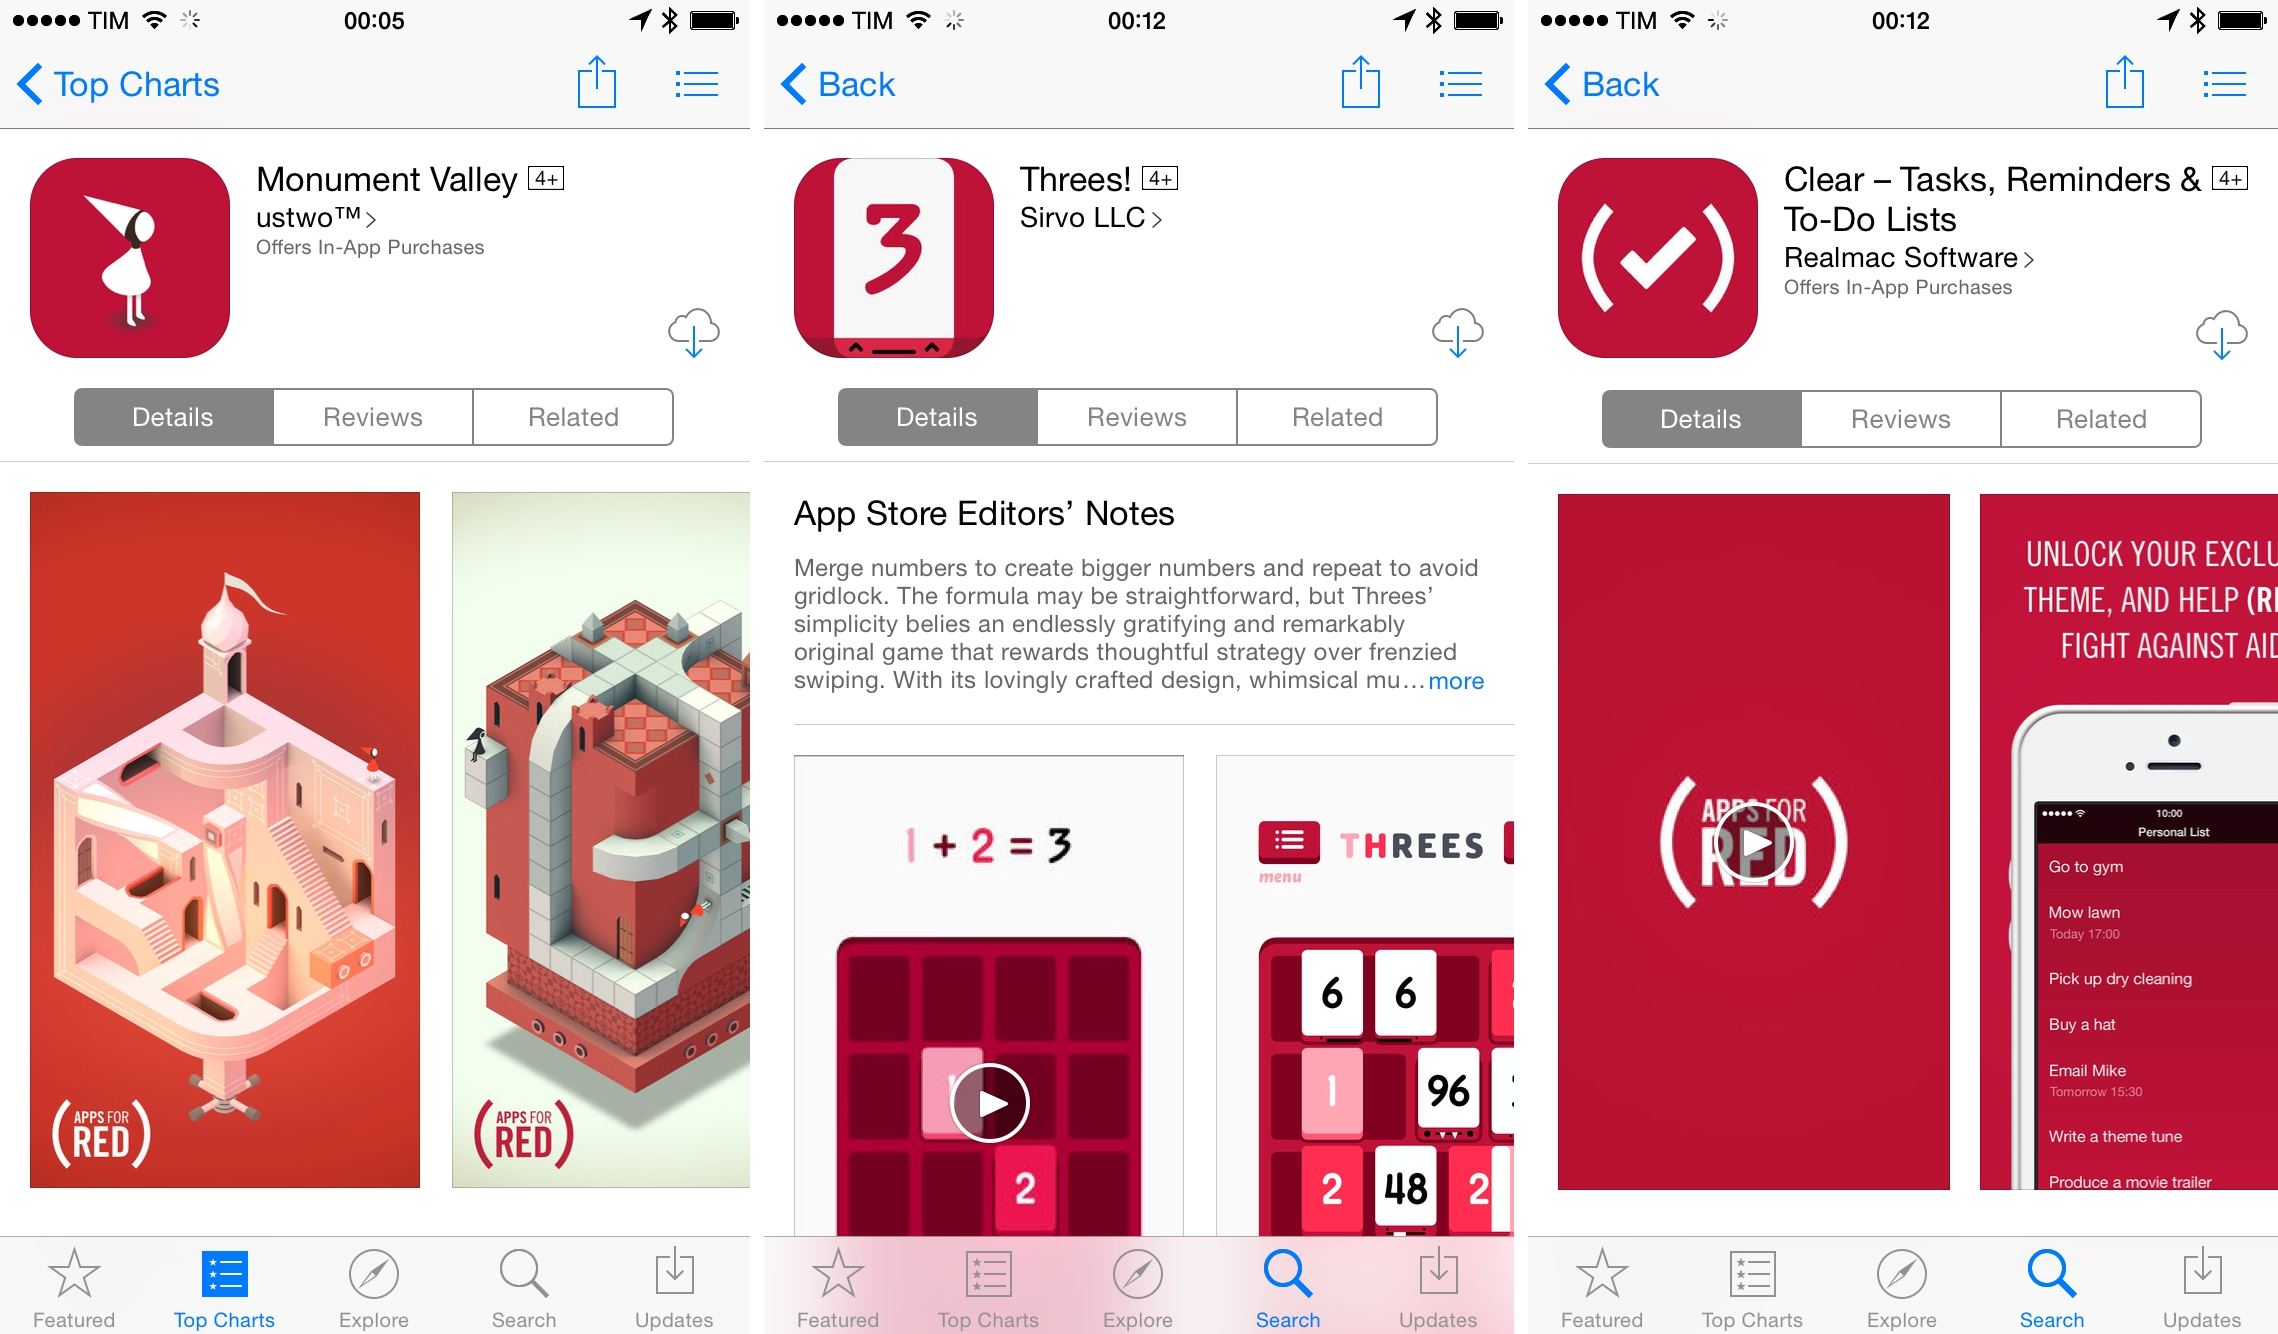 Apple Launches (RED) App Store Promotion, Donating Proceeds to Fight AIDS